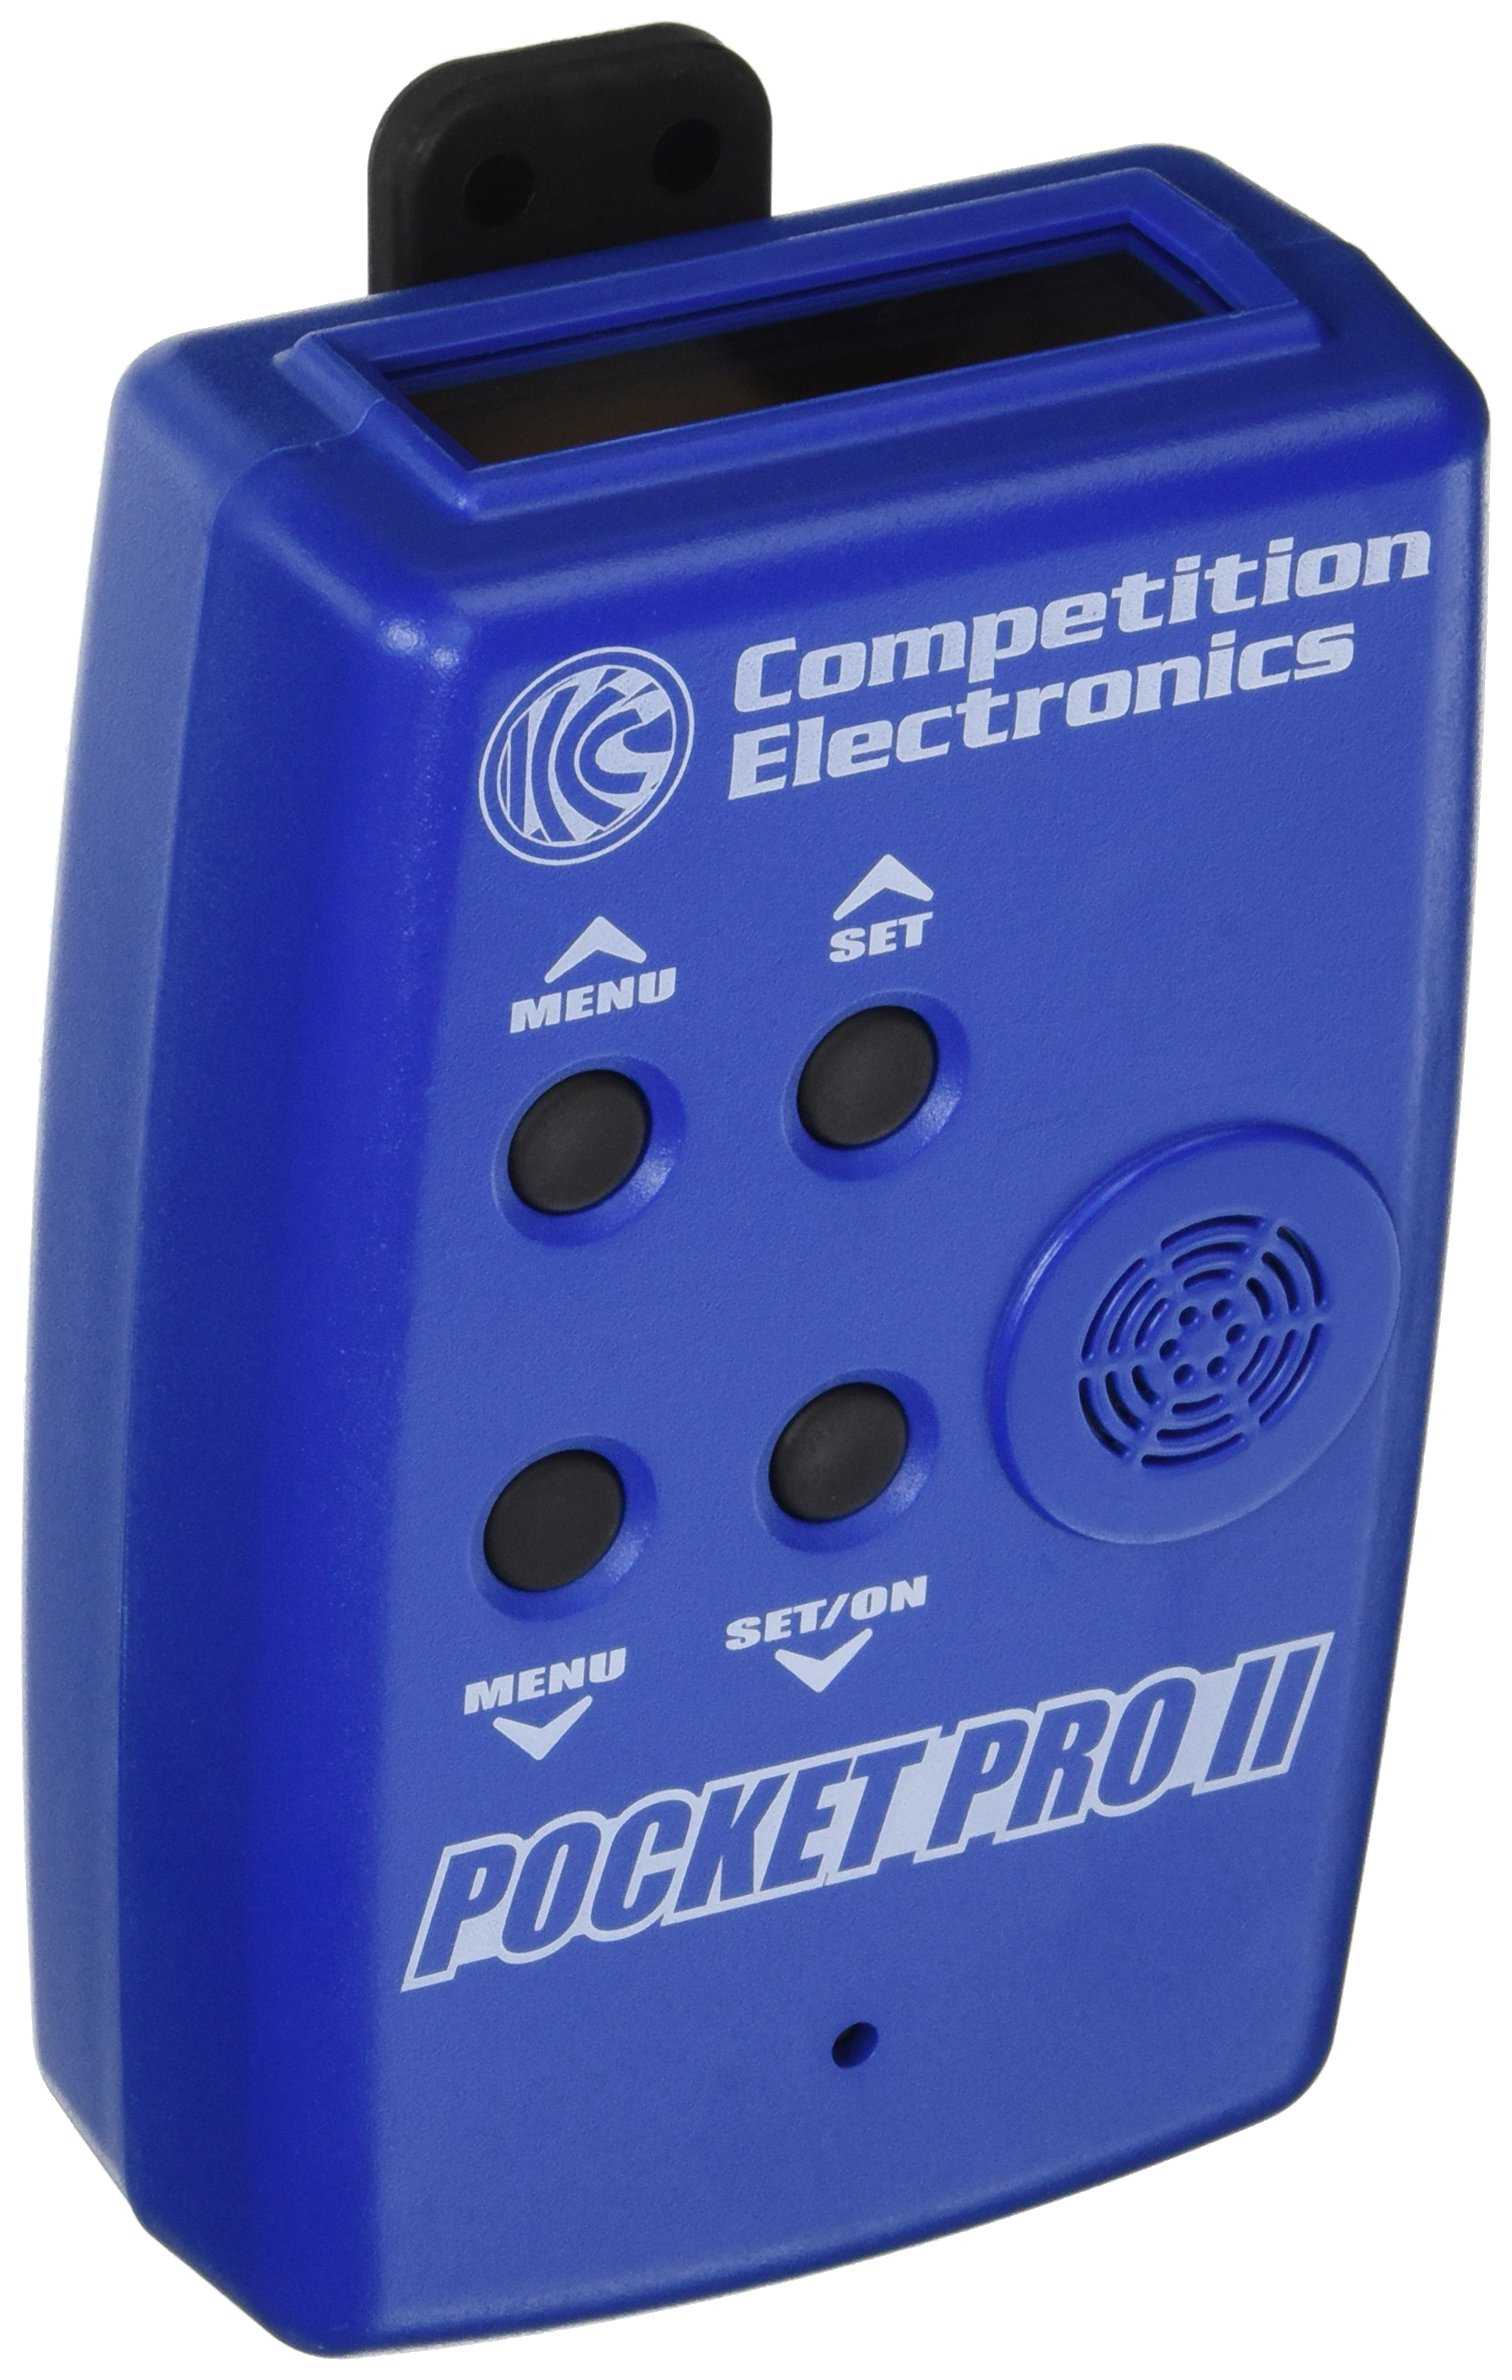 Competition Electronics Pocket Pro II Timer Blue CEI-4700 by Competition Electronics